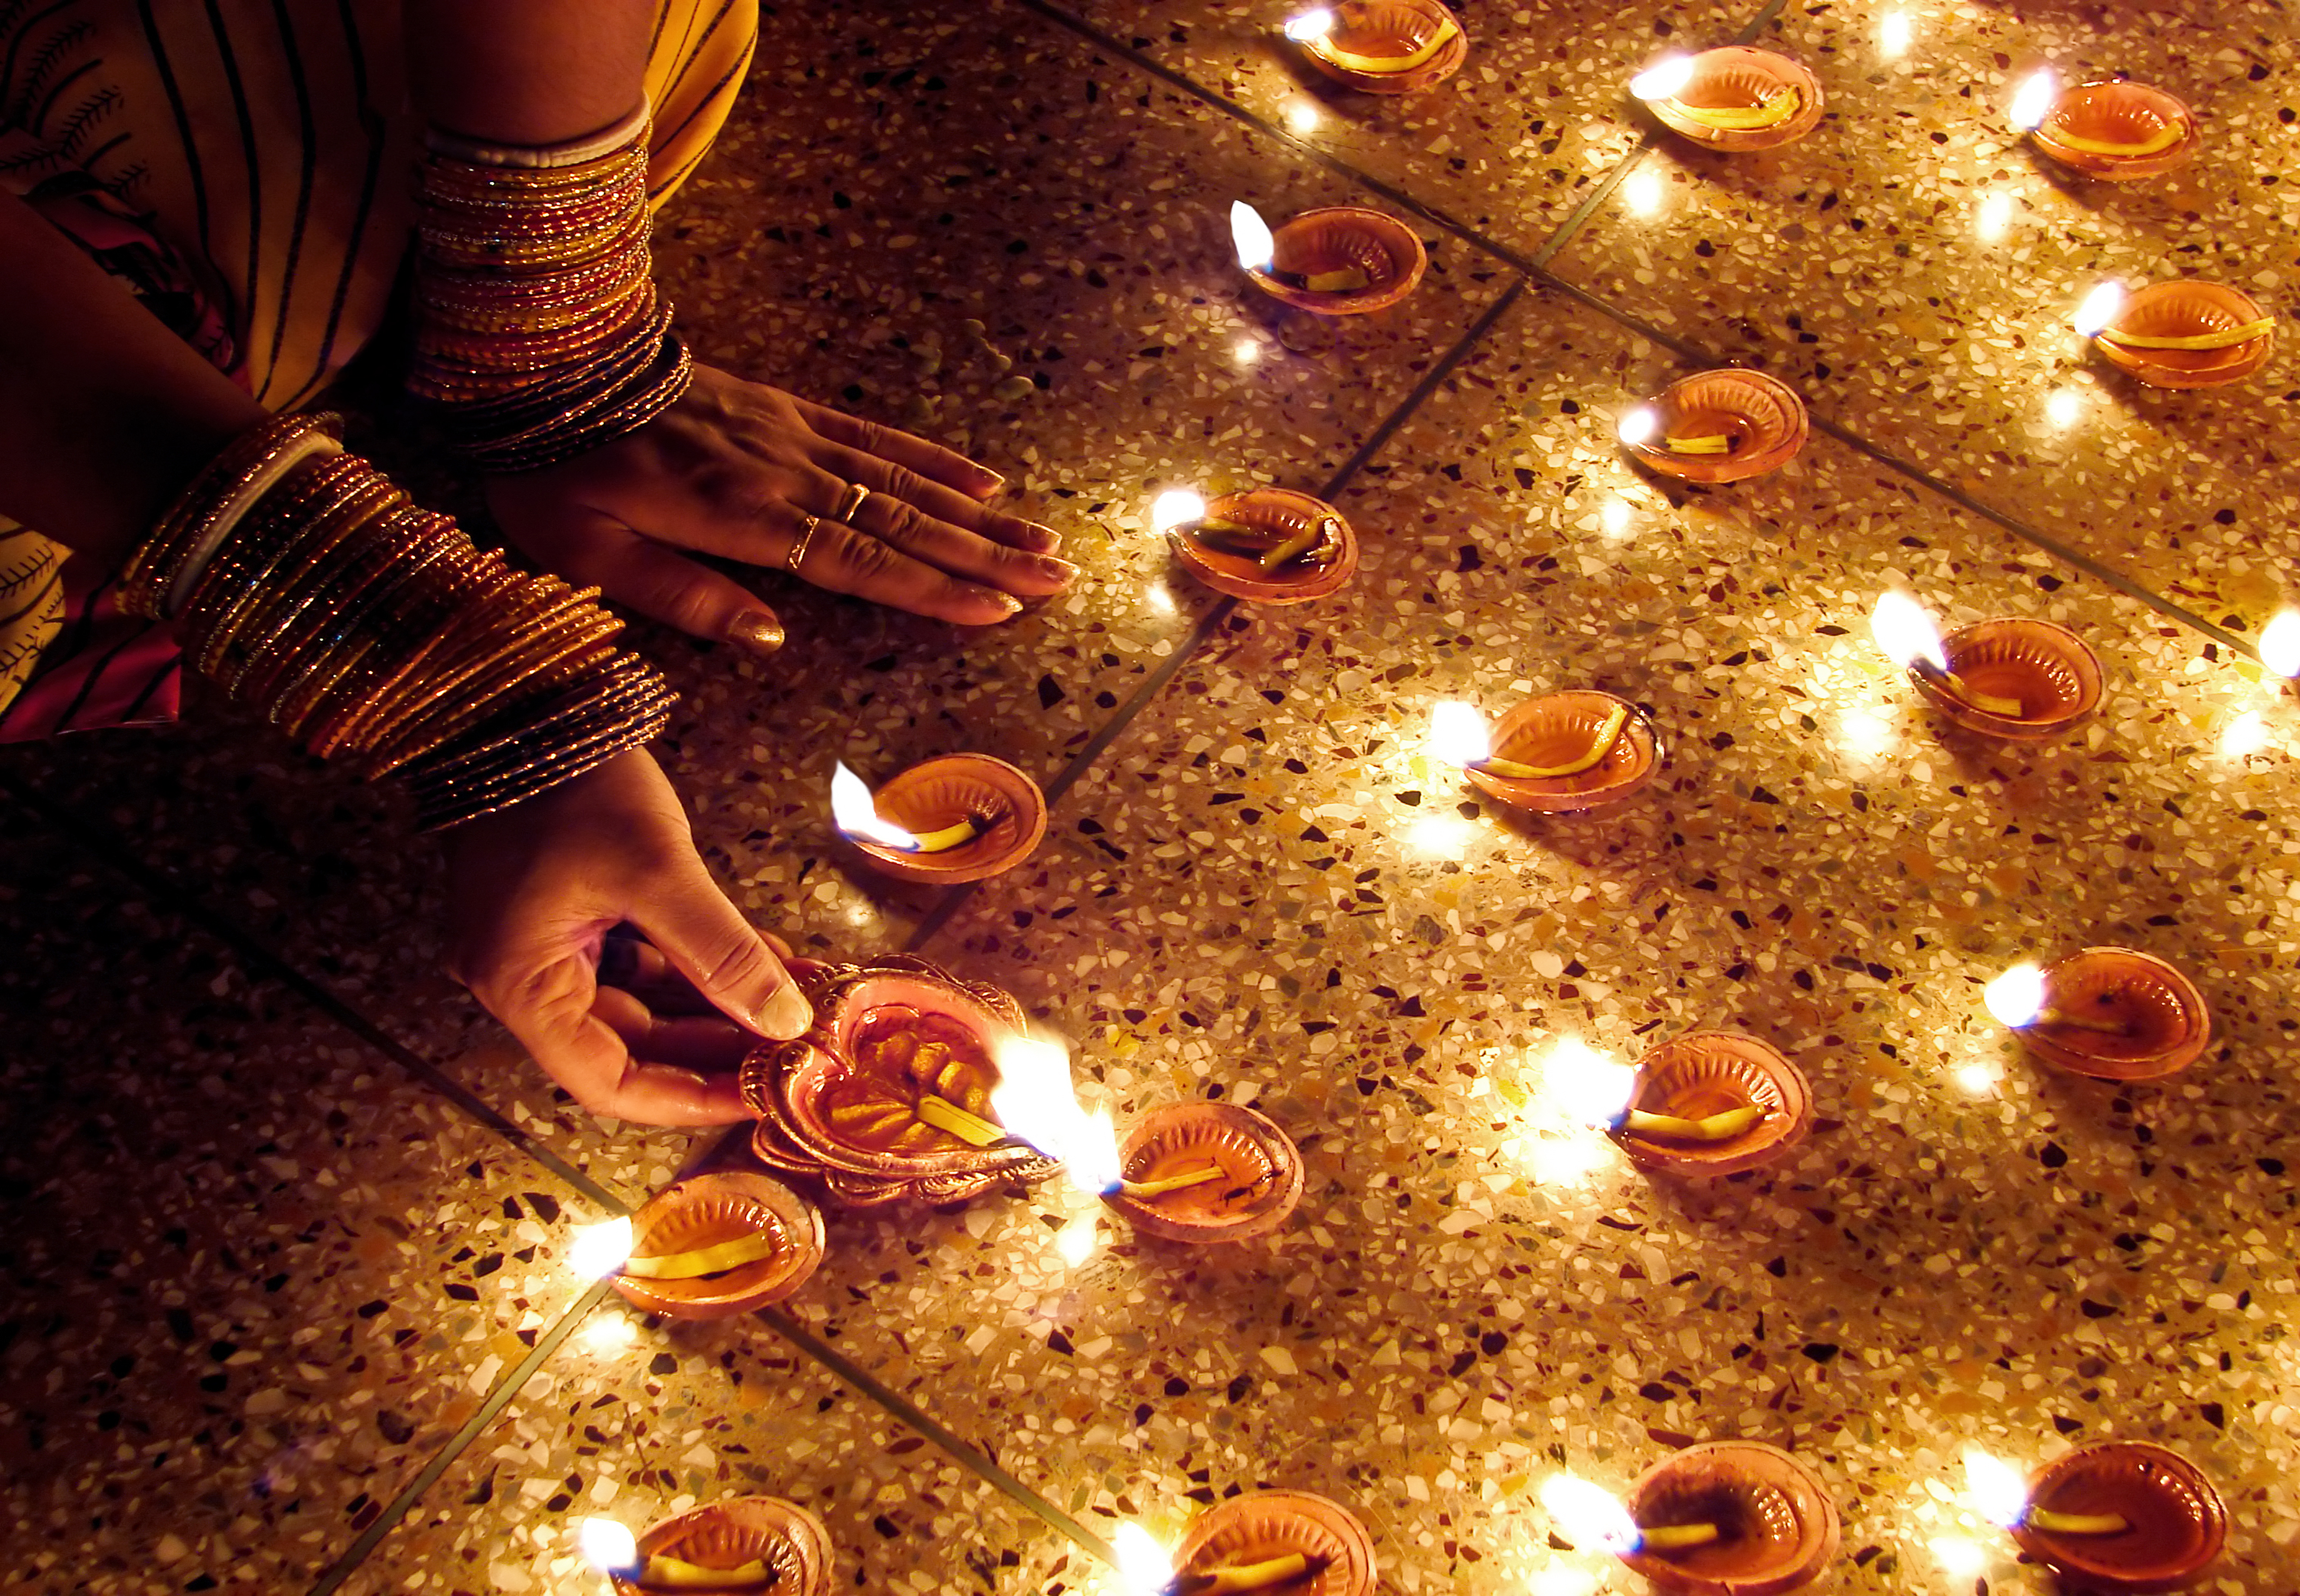 Diwali 2016 What To Know About Diwali Festival Of Lights Time These diwali photos can be downloaded free of cost from astrosage. 2